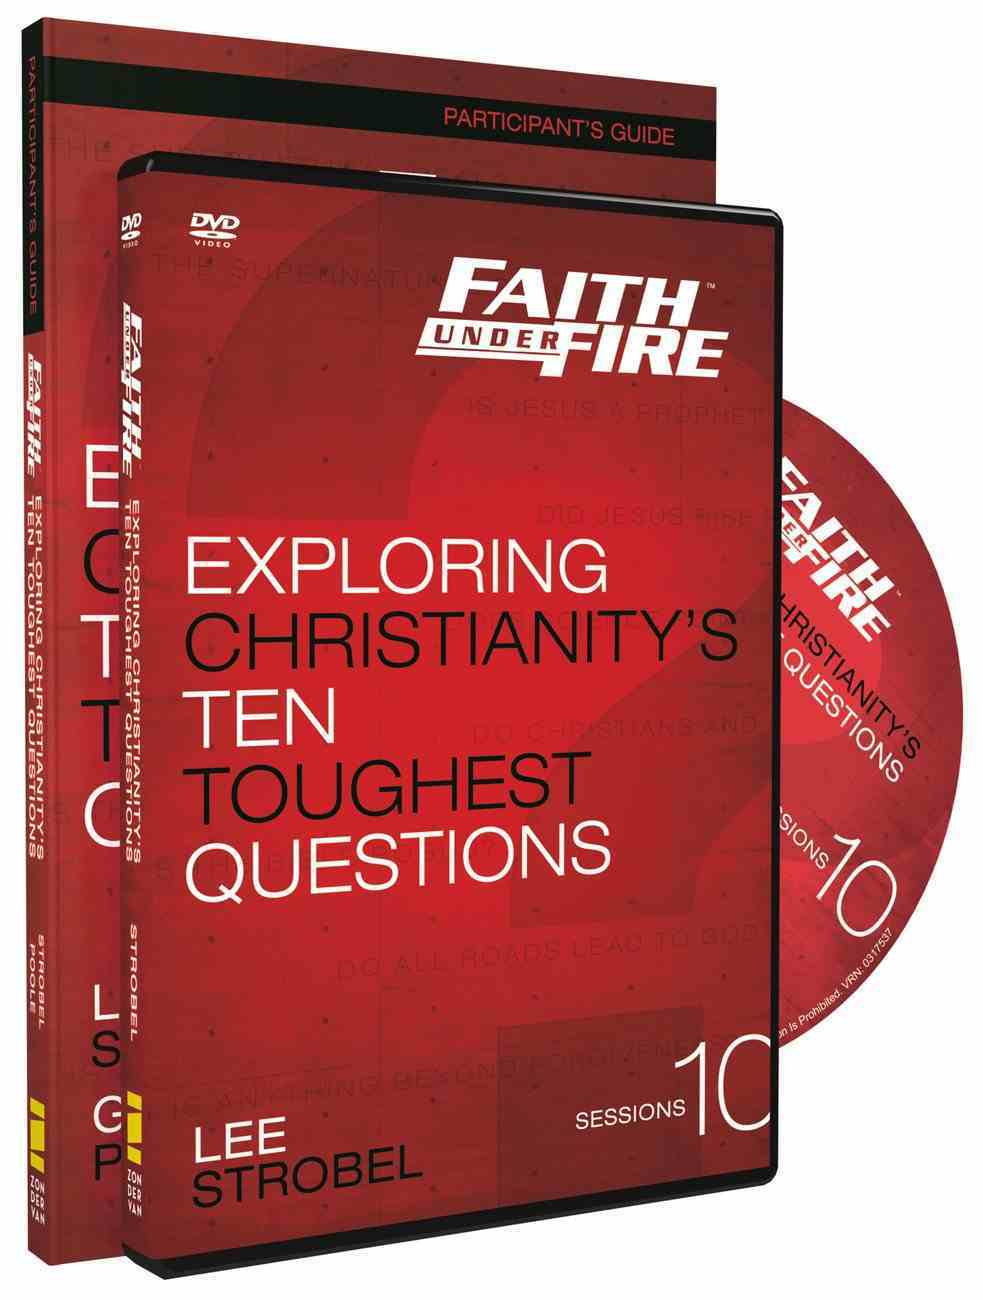 Faith Under Fire: Exploring Christianity's Ten Toughest Questions (Participant Guide With Dvd) Paperback